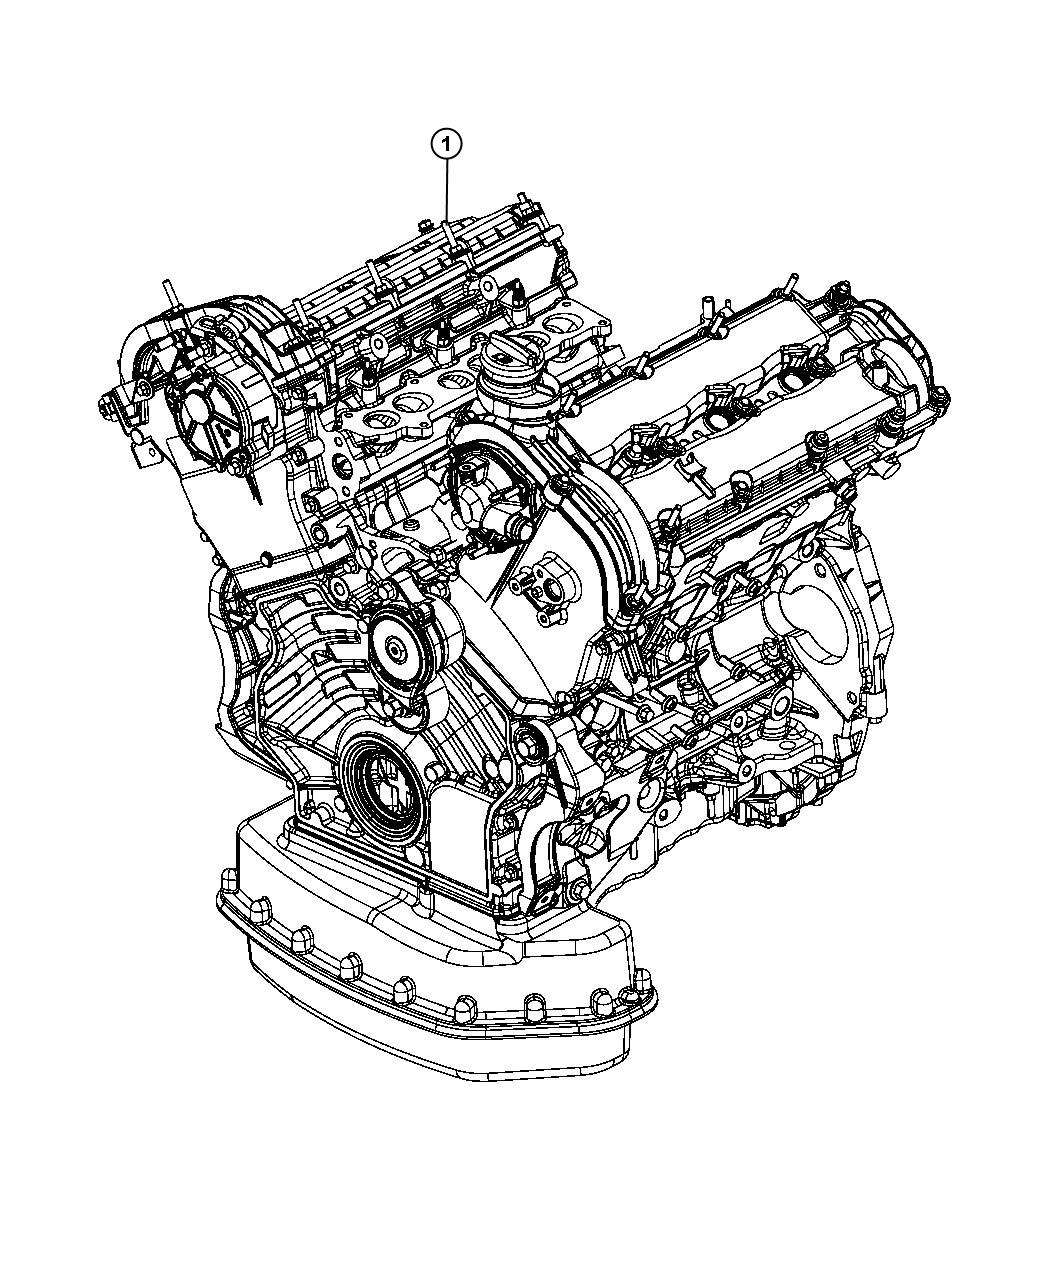 Jeep Grand Cherokee Engine Long Block New Part For